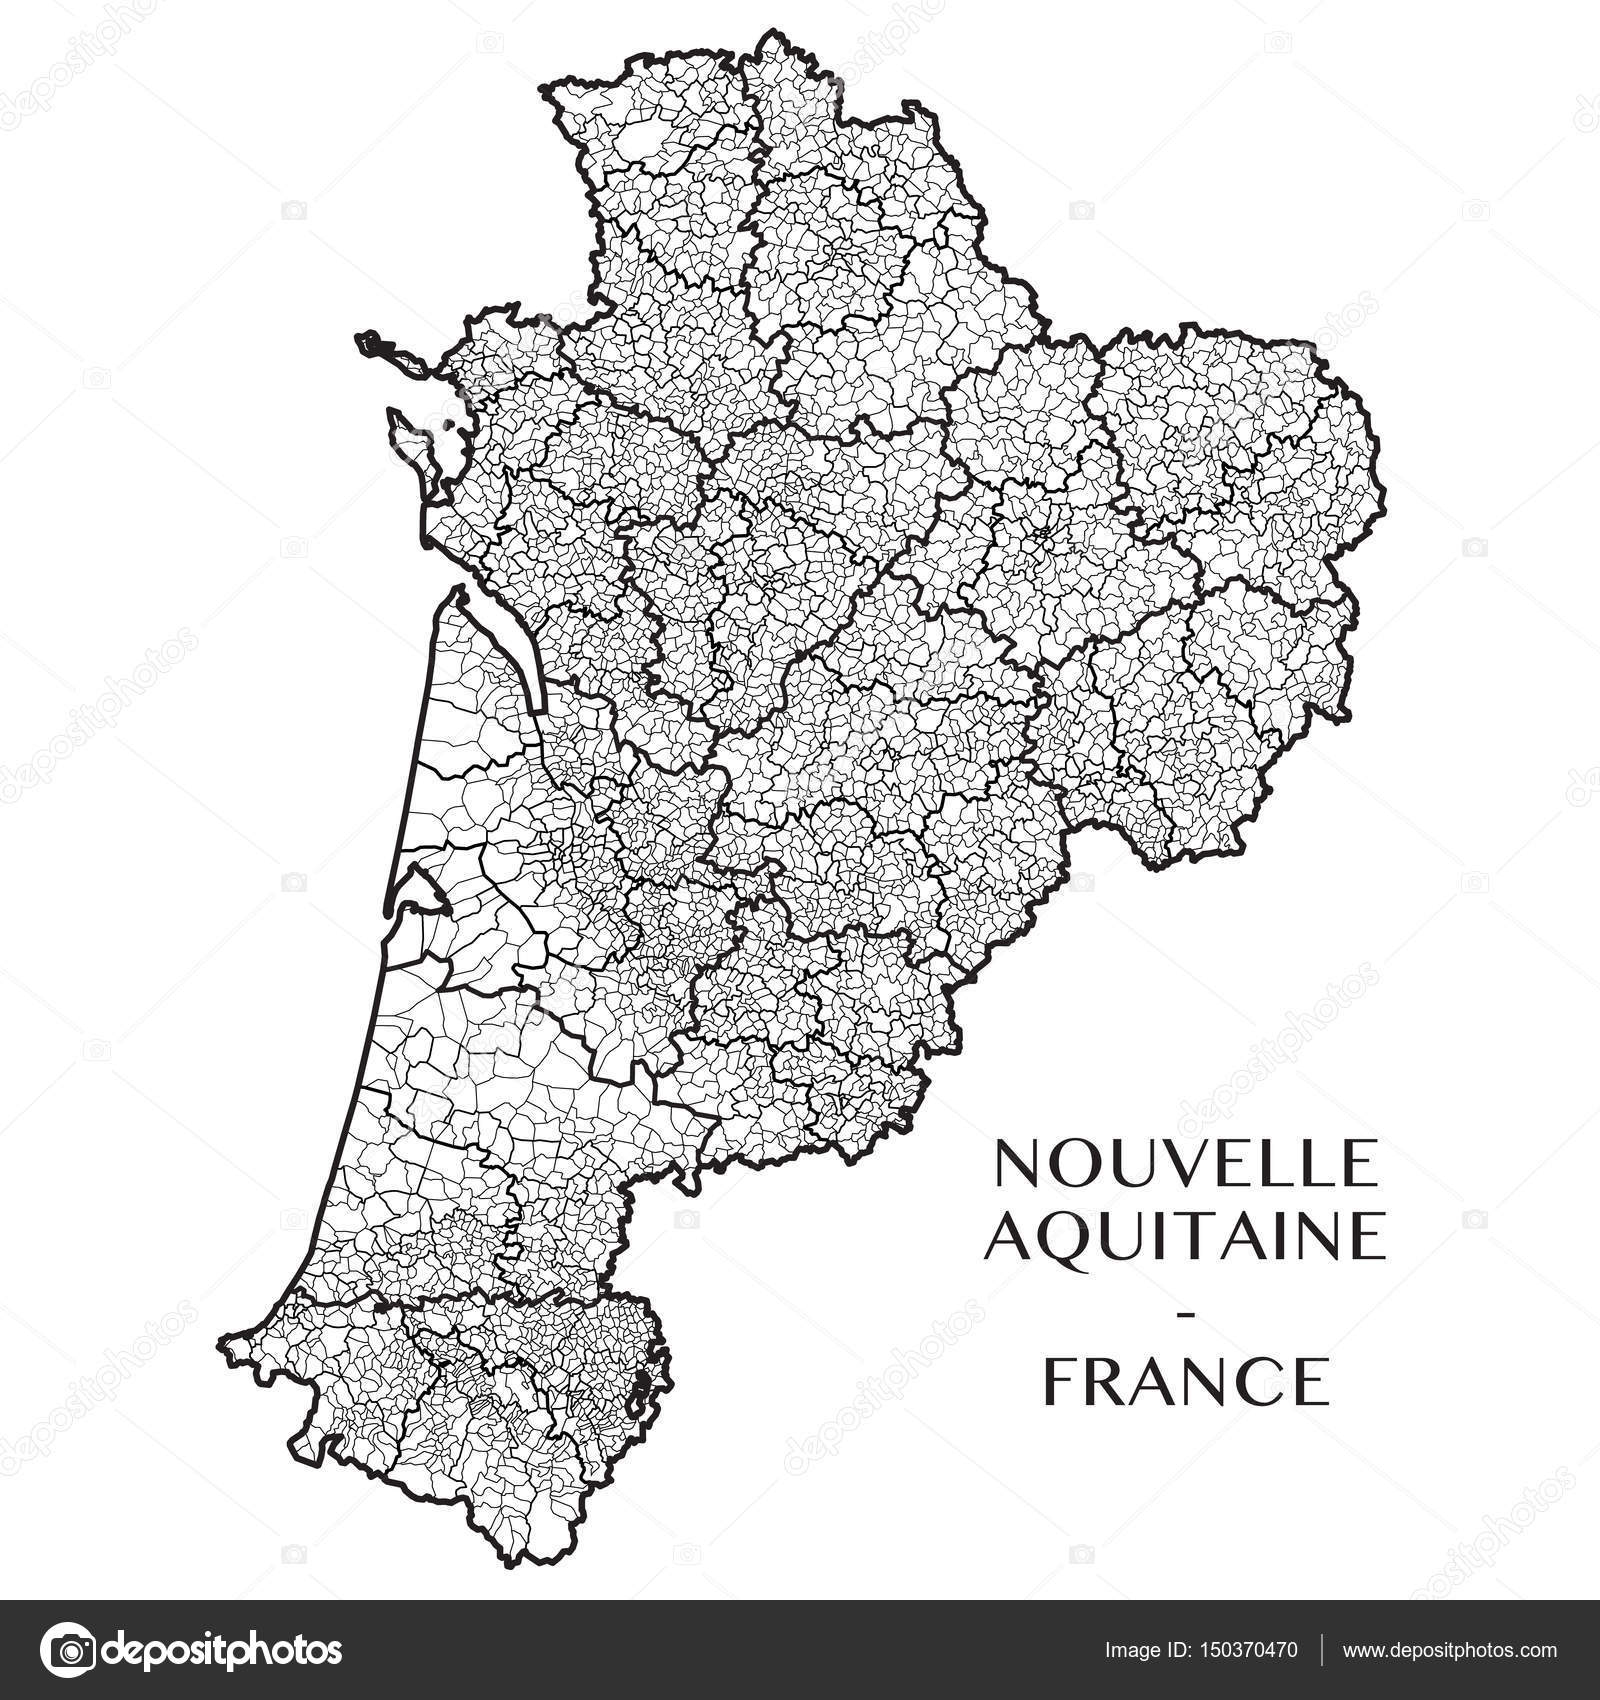 Detailed map of the French region of Nouvelle Aquitaine France